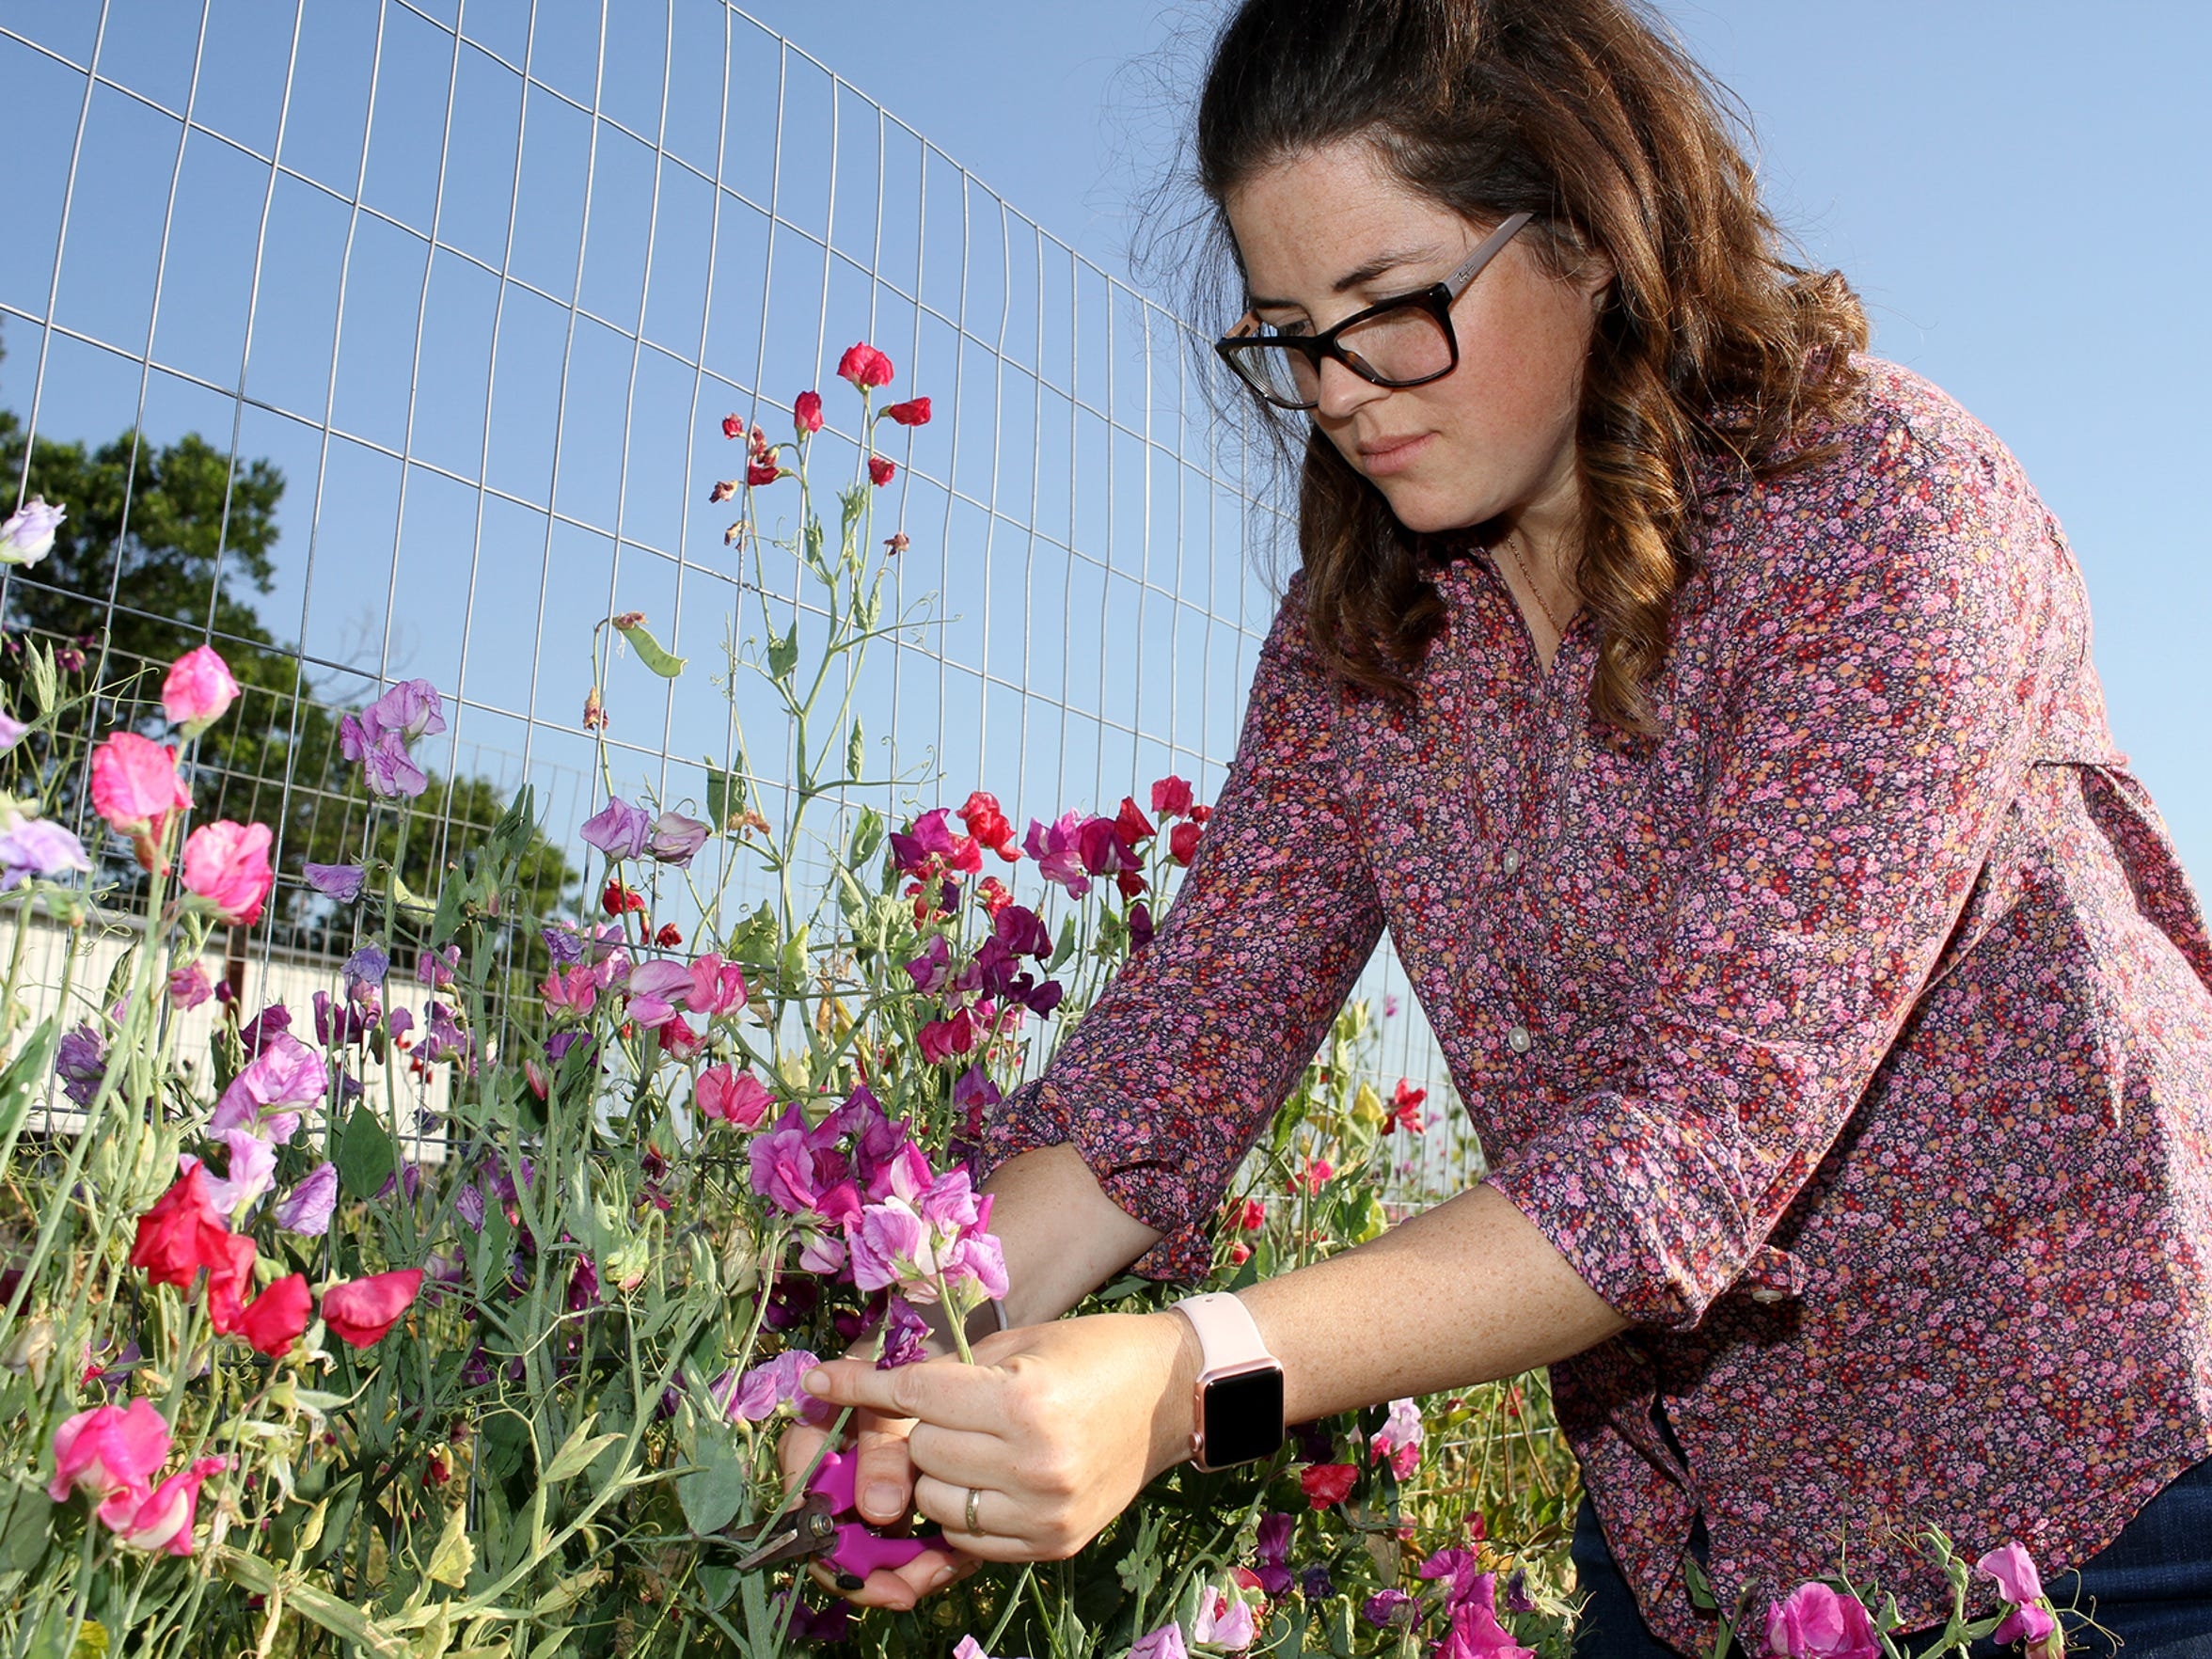 Blair Ramon said if she's doing her job, you won't see many blooms at Gilbert Creek Gardens in Burkburnett, as she's constantly harvesting flowers for delivery to such places as Frank & Joe's, Odd Duck Coffee and LITTLE h CREATIVE.